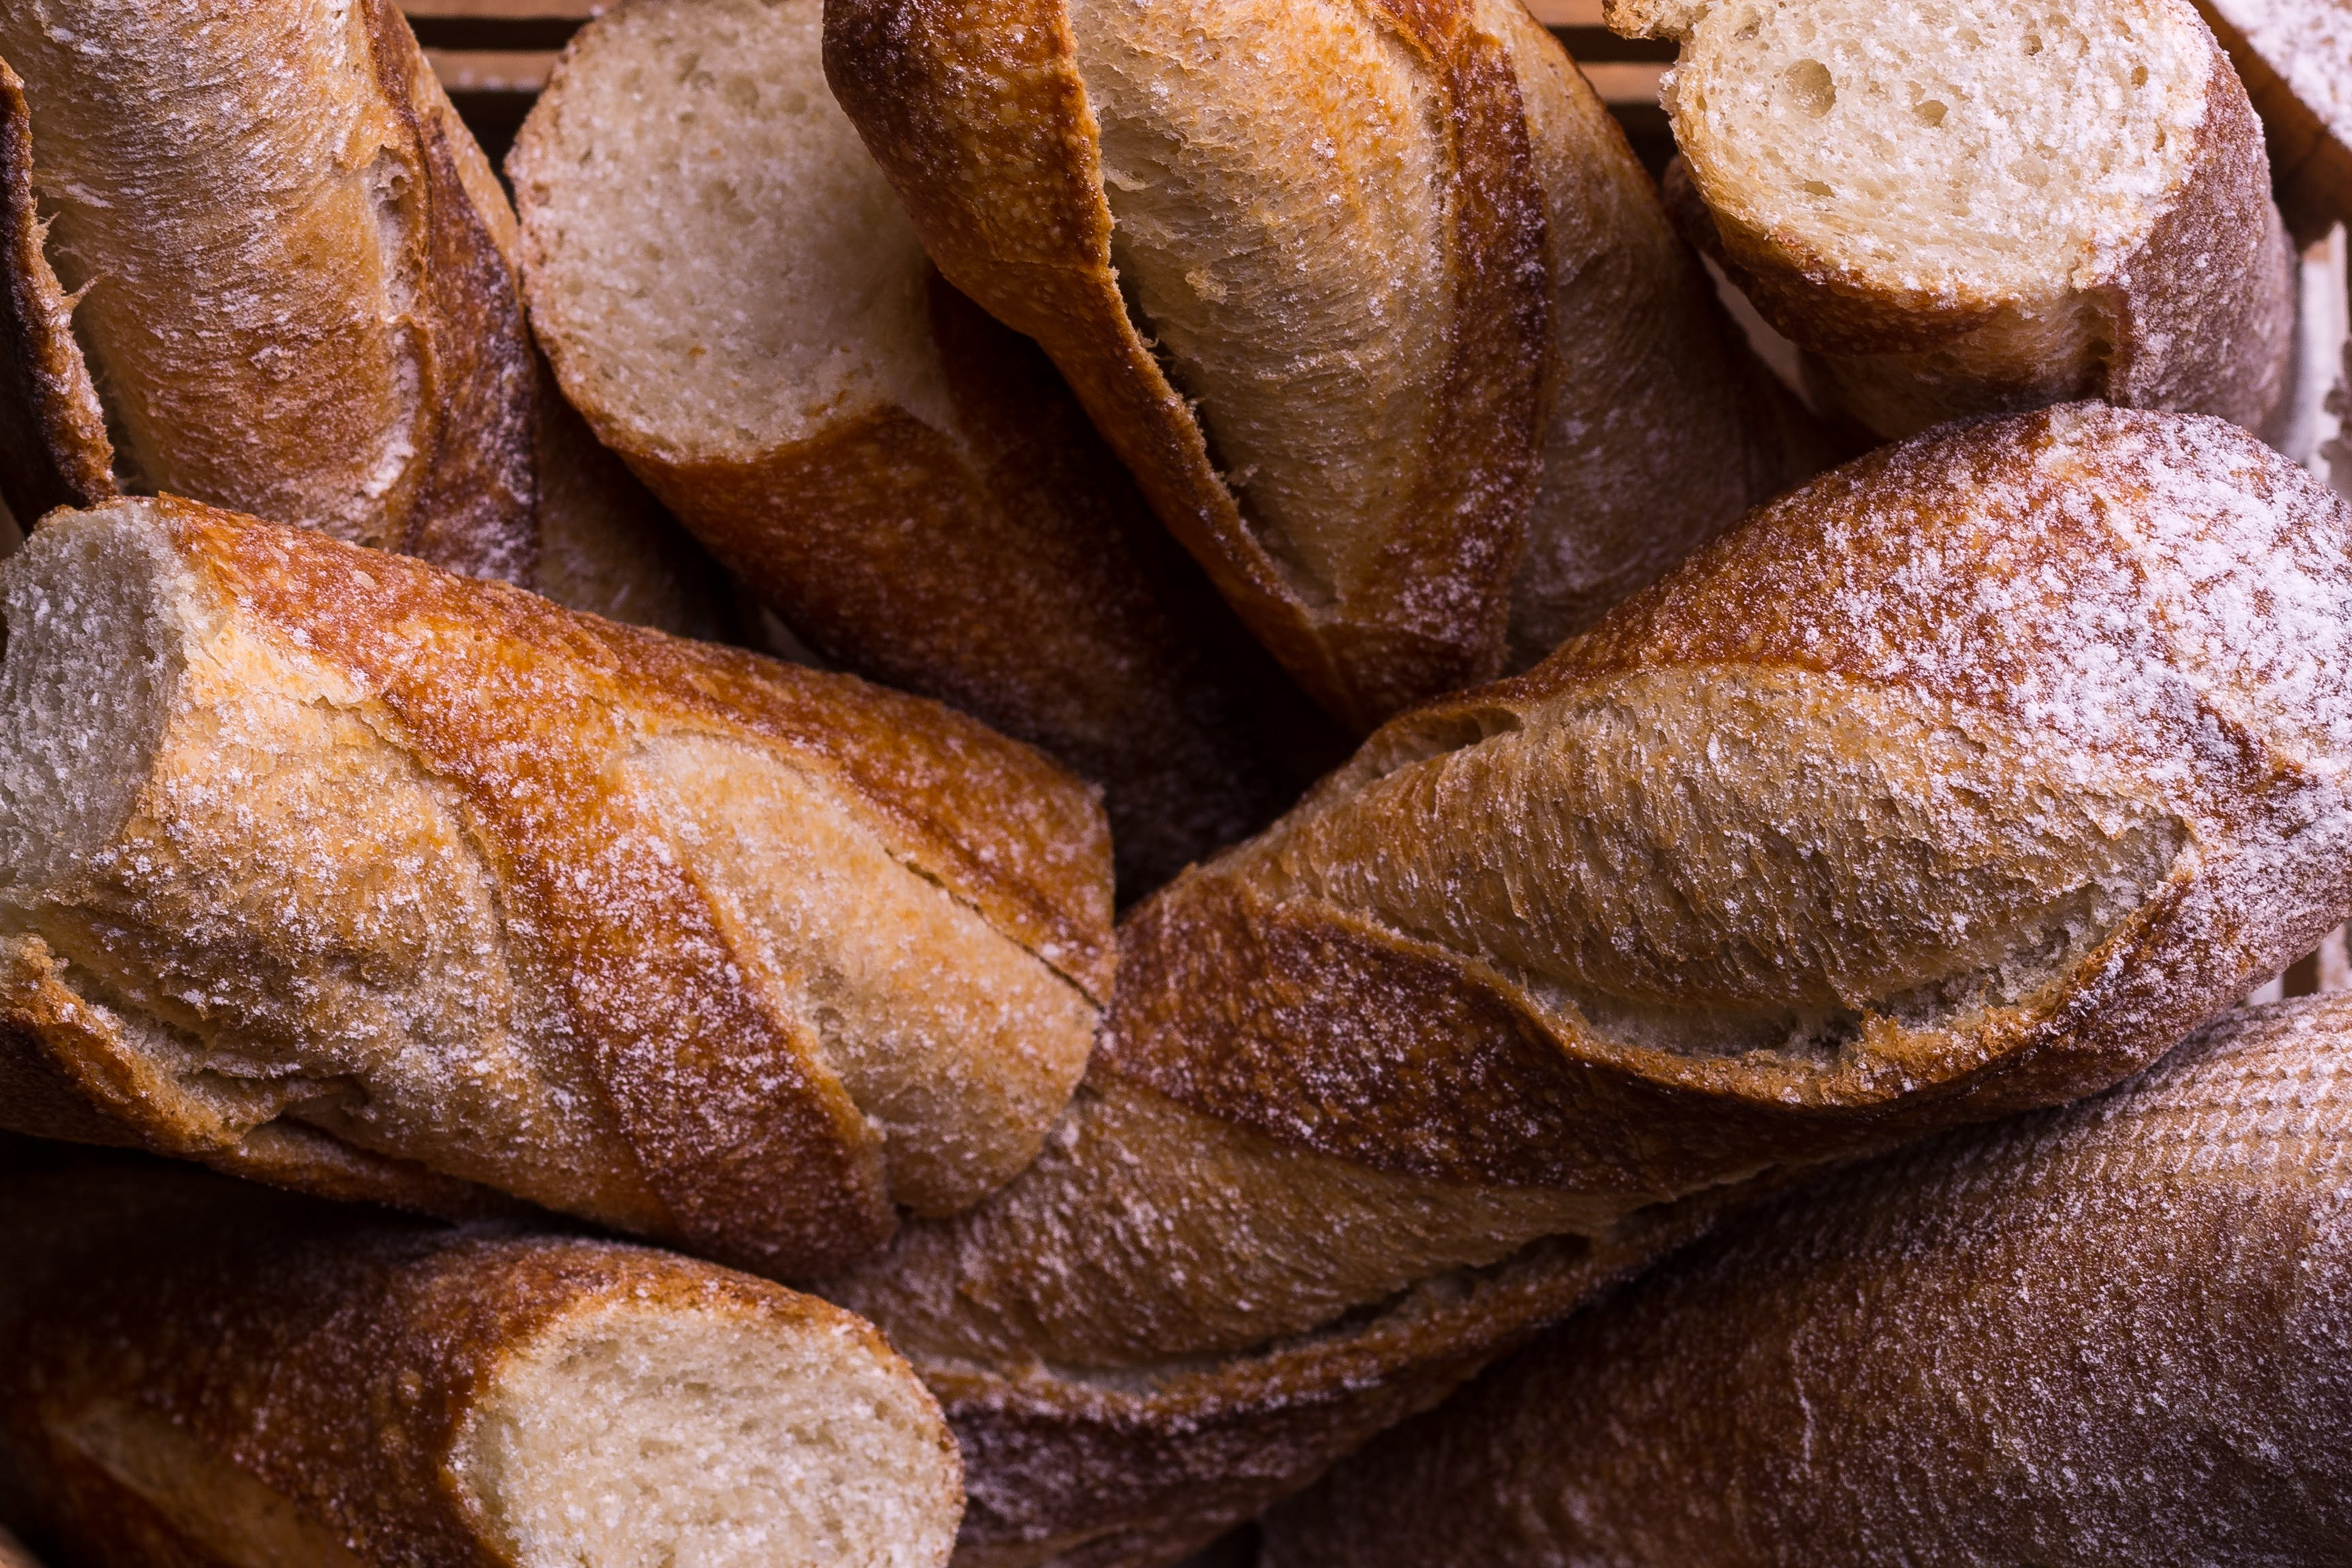 Close-up Photo of French Breads